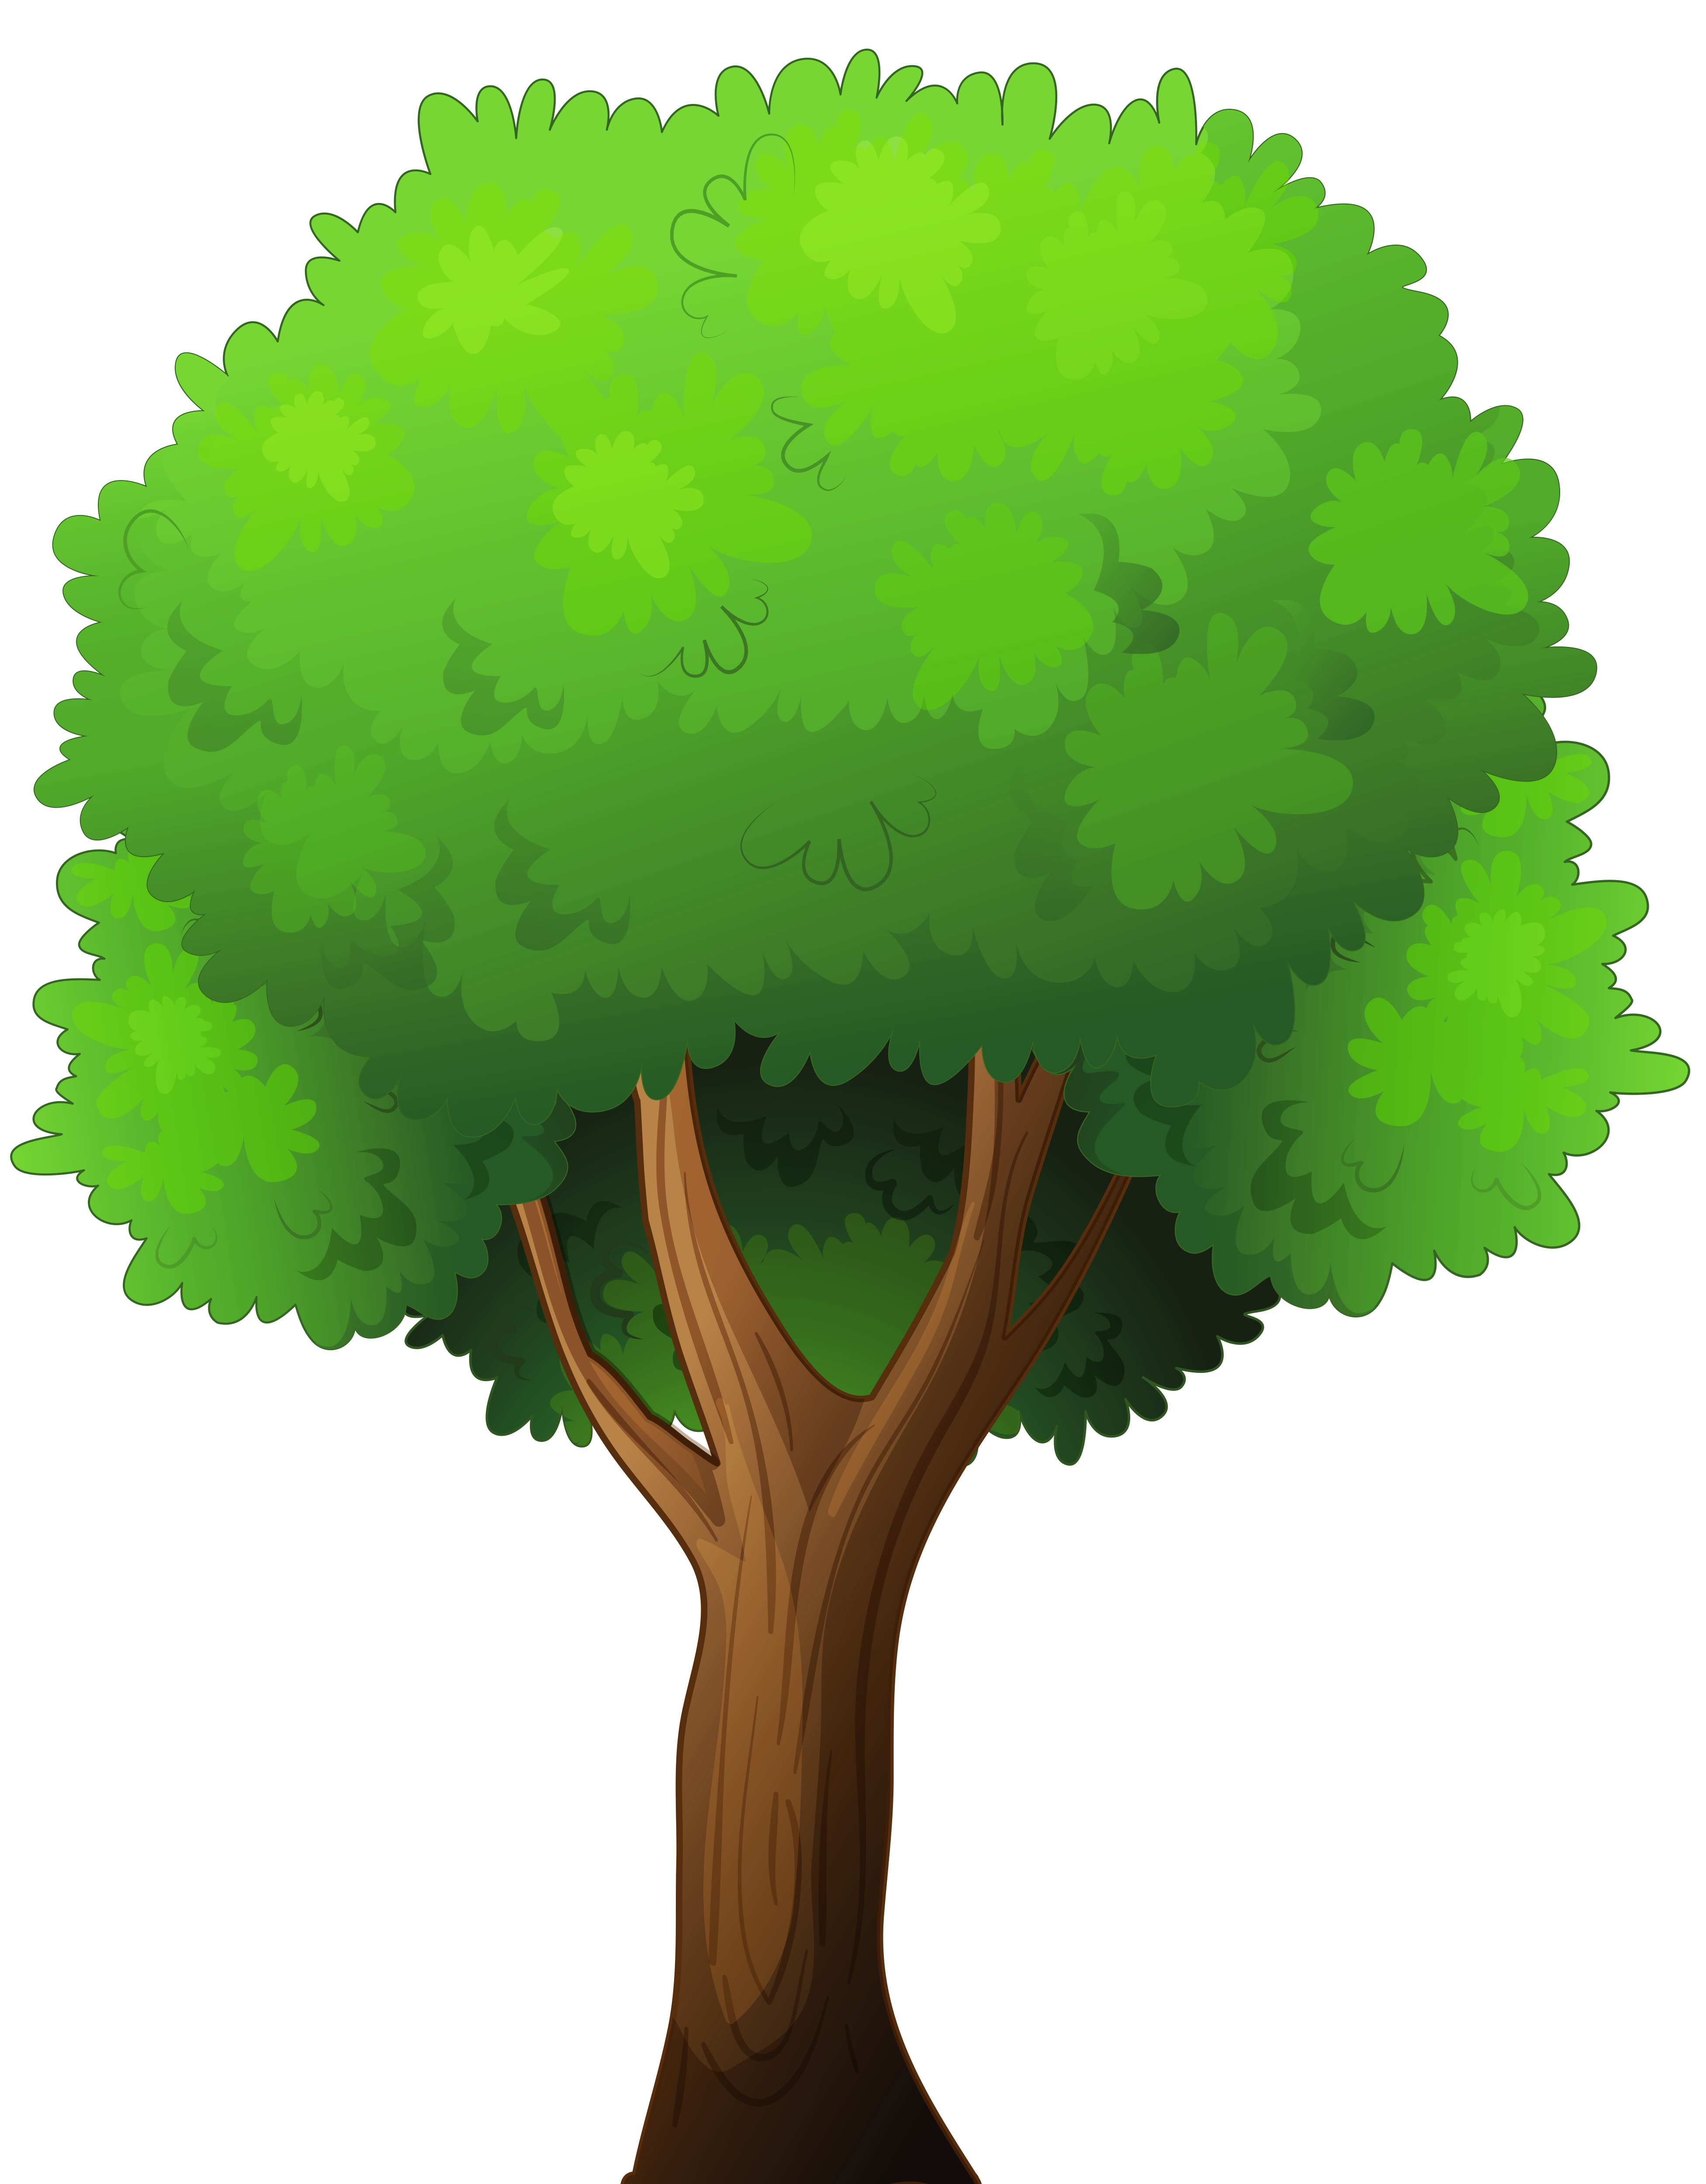 Tree Clipart Png-tree clipart png-14